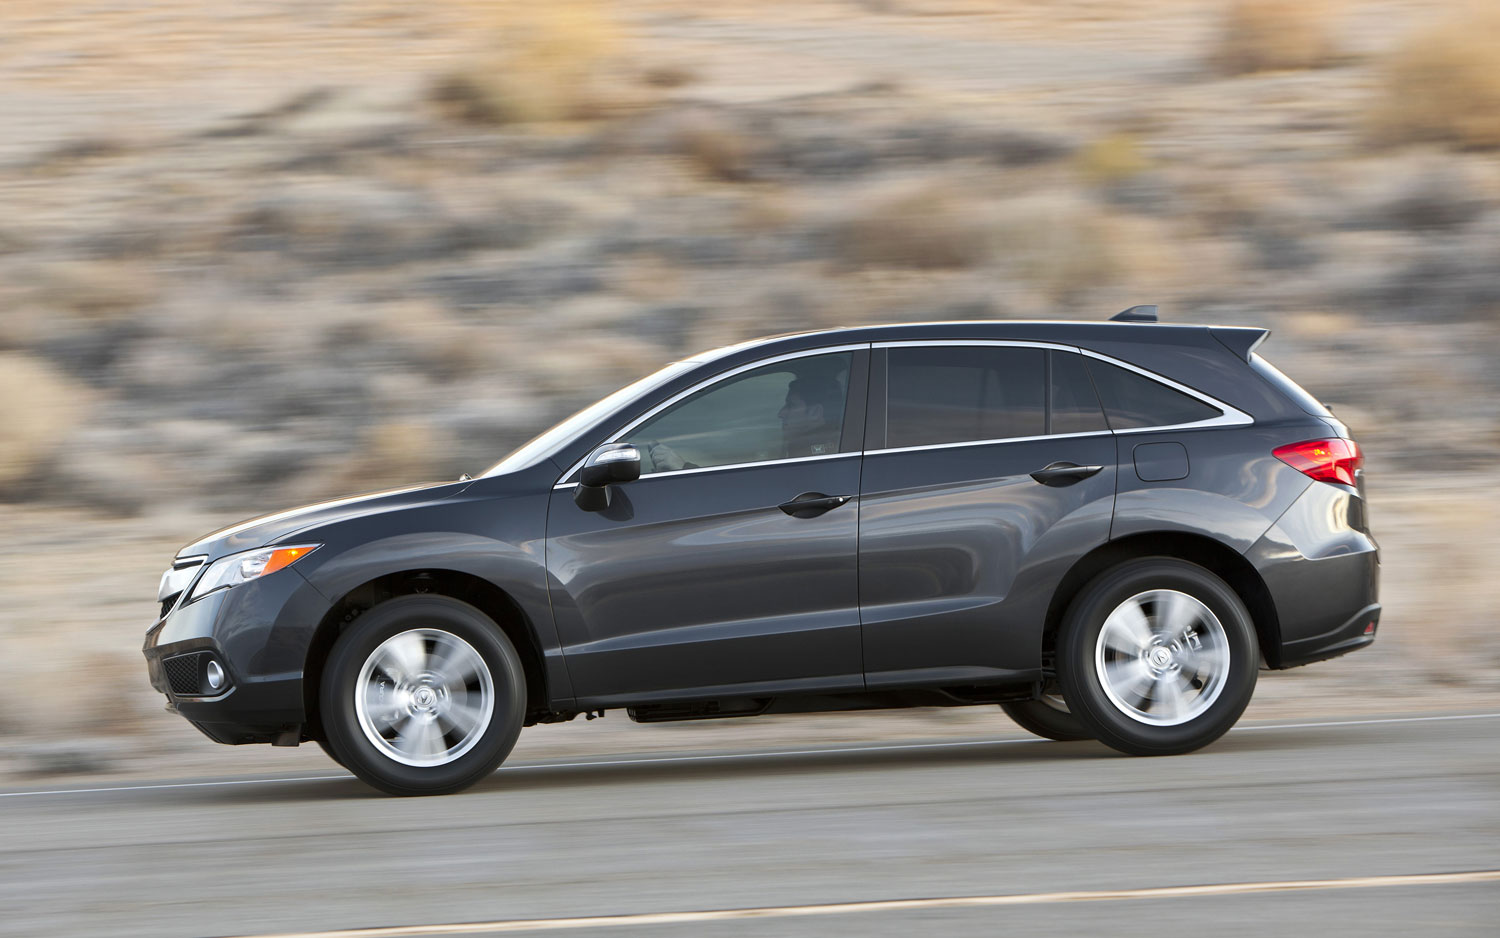 rdx base ideas free gallery oem design suv fabulous about rq on used with cars acura hd dr